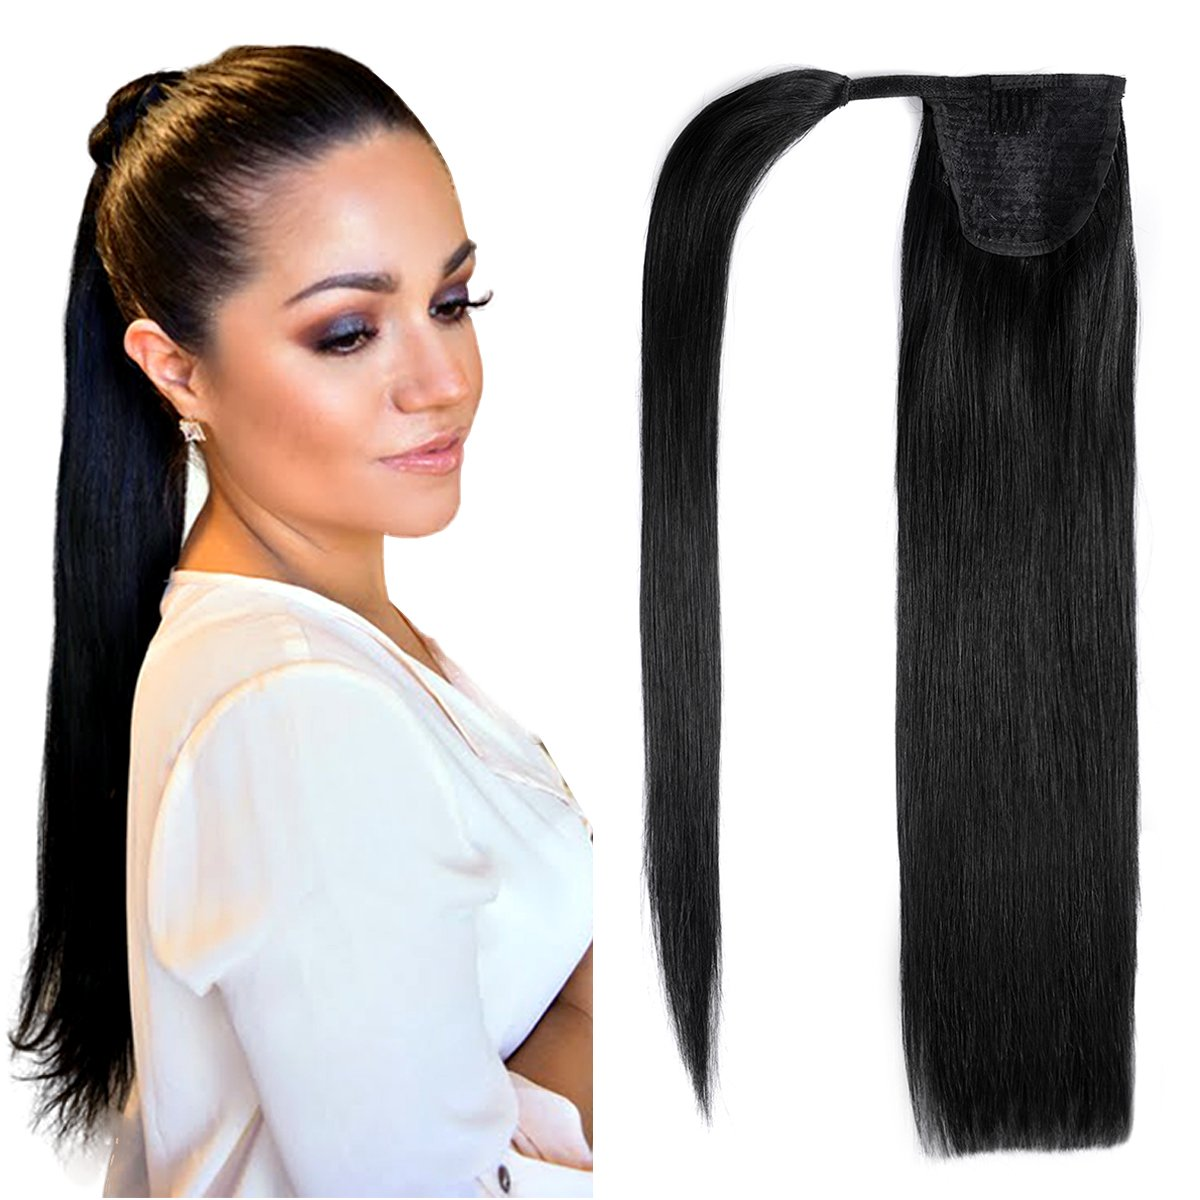 20human Hair Ponytail Extensions Wrap Around Ponytails Clip In